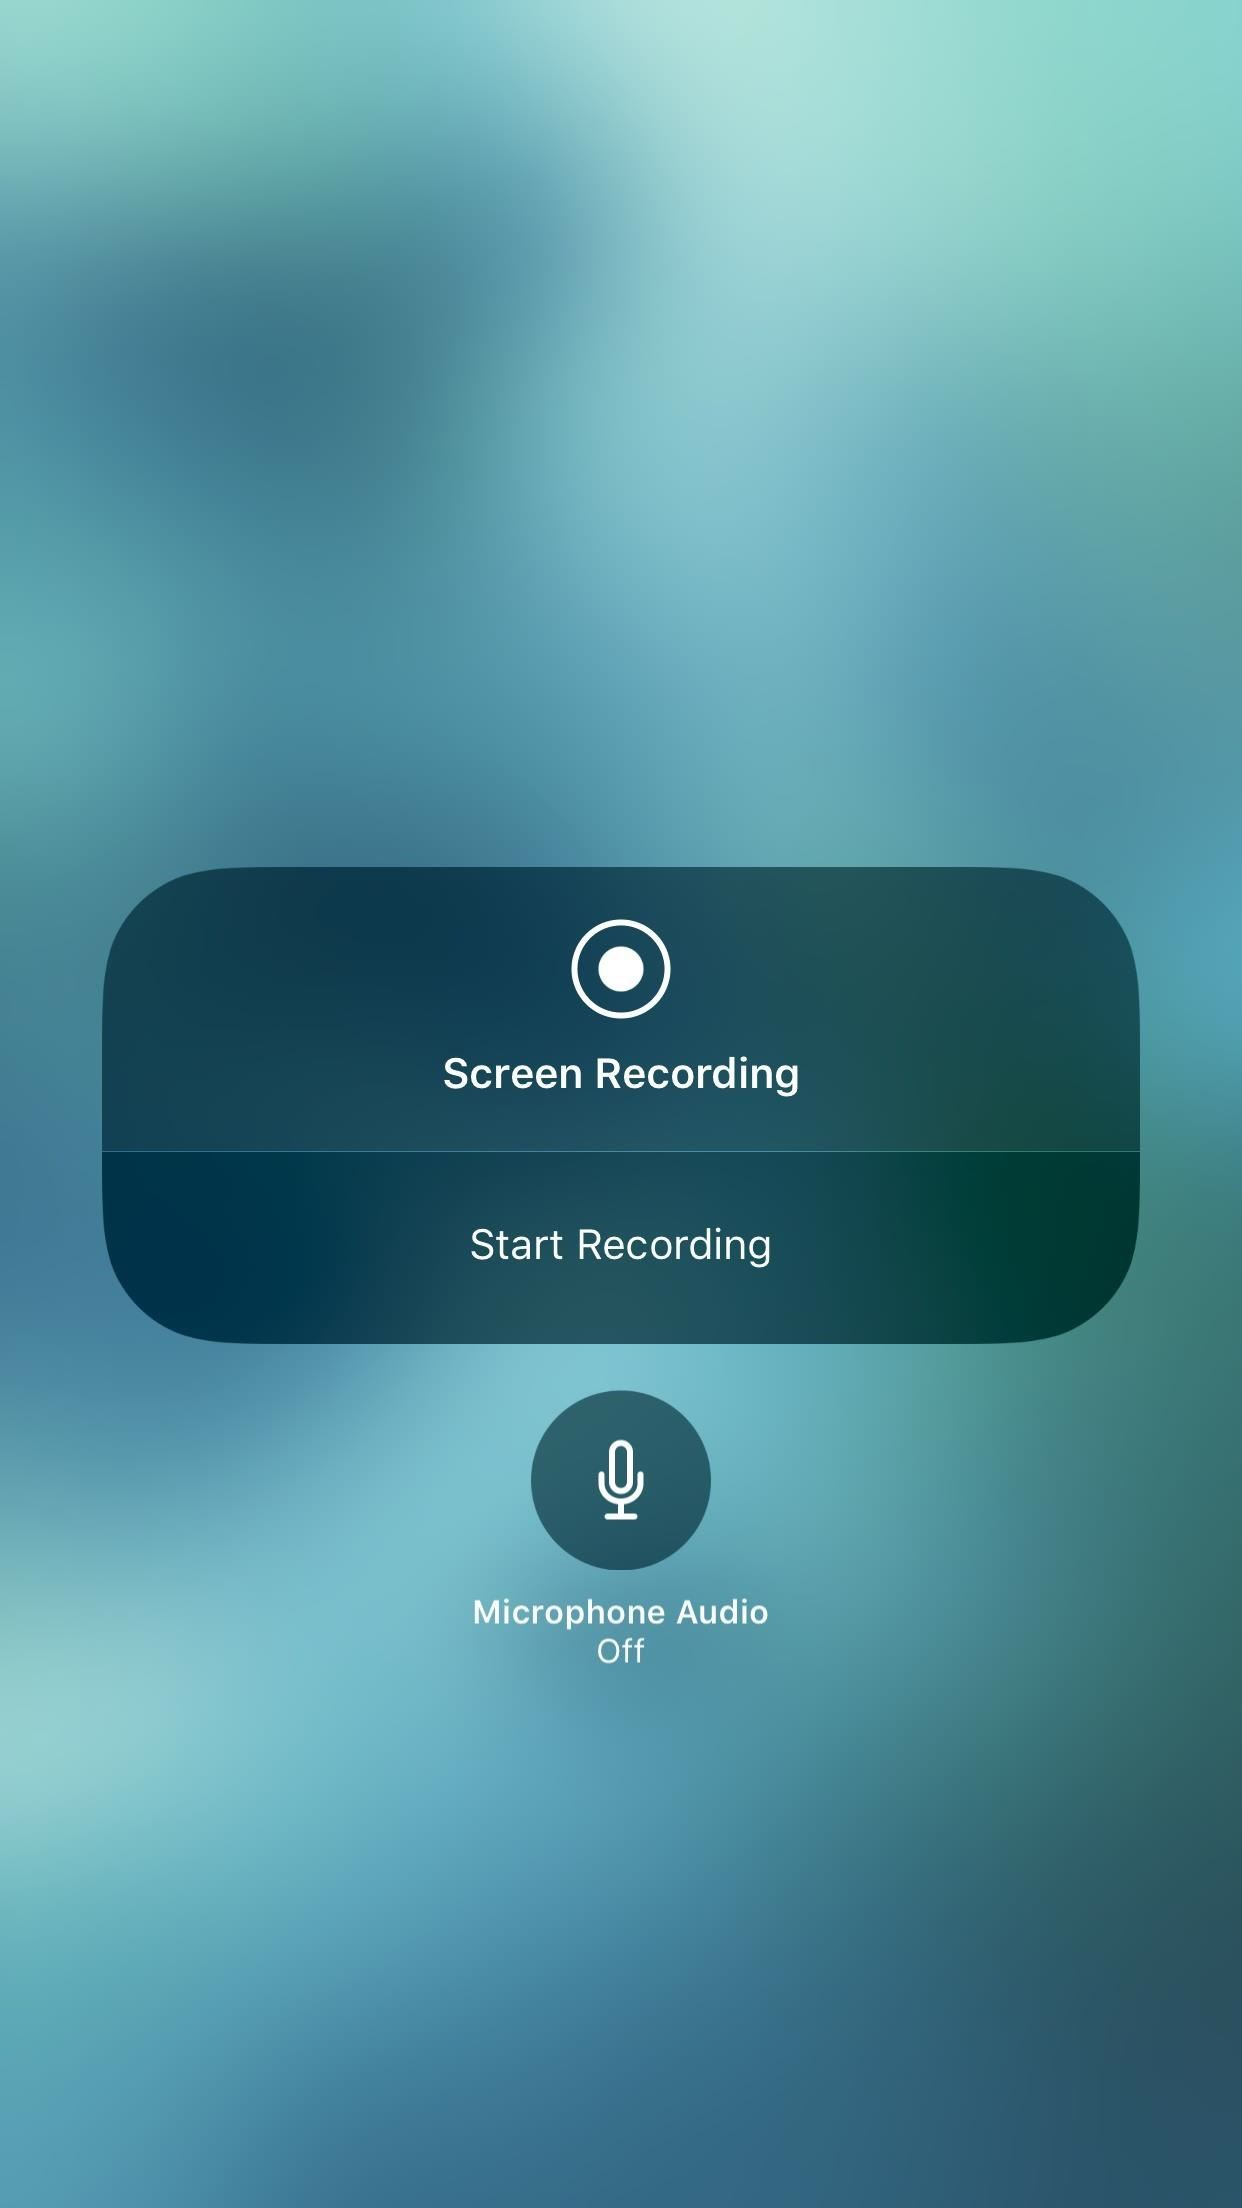 How to Record Your iPhone's Screen with Audio in iOS 11 — No Jailbreak or Computer Needed